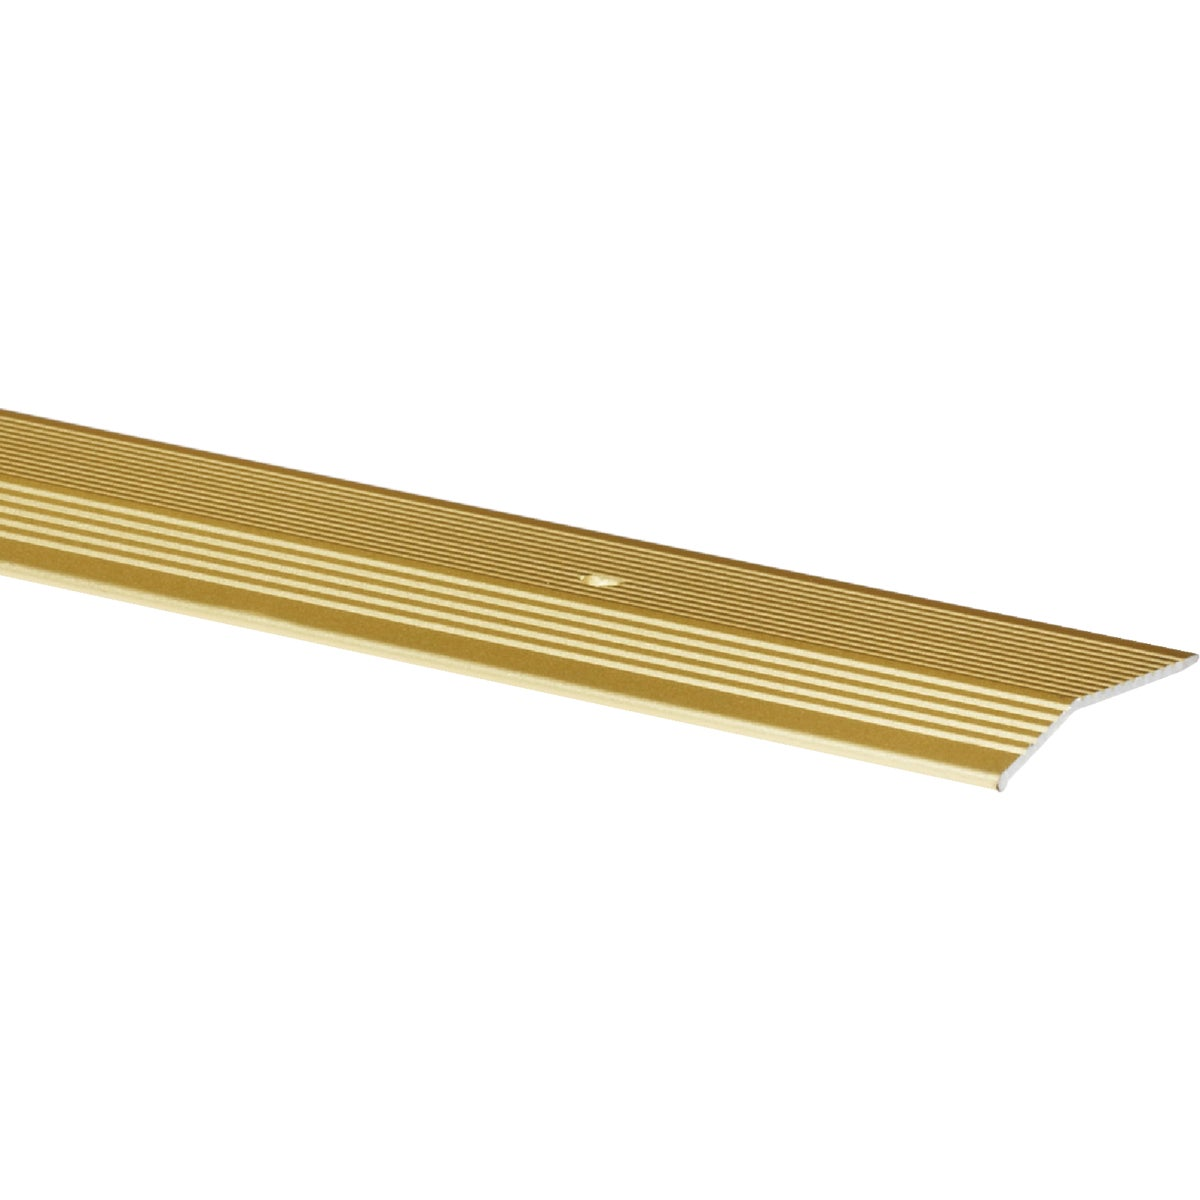 """2""""X6' GOLD CARPET BAR - H1591FB6DI by Thermwell Prods Co"""